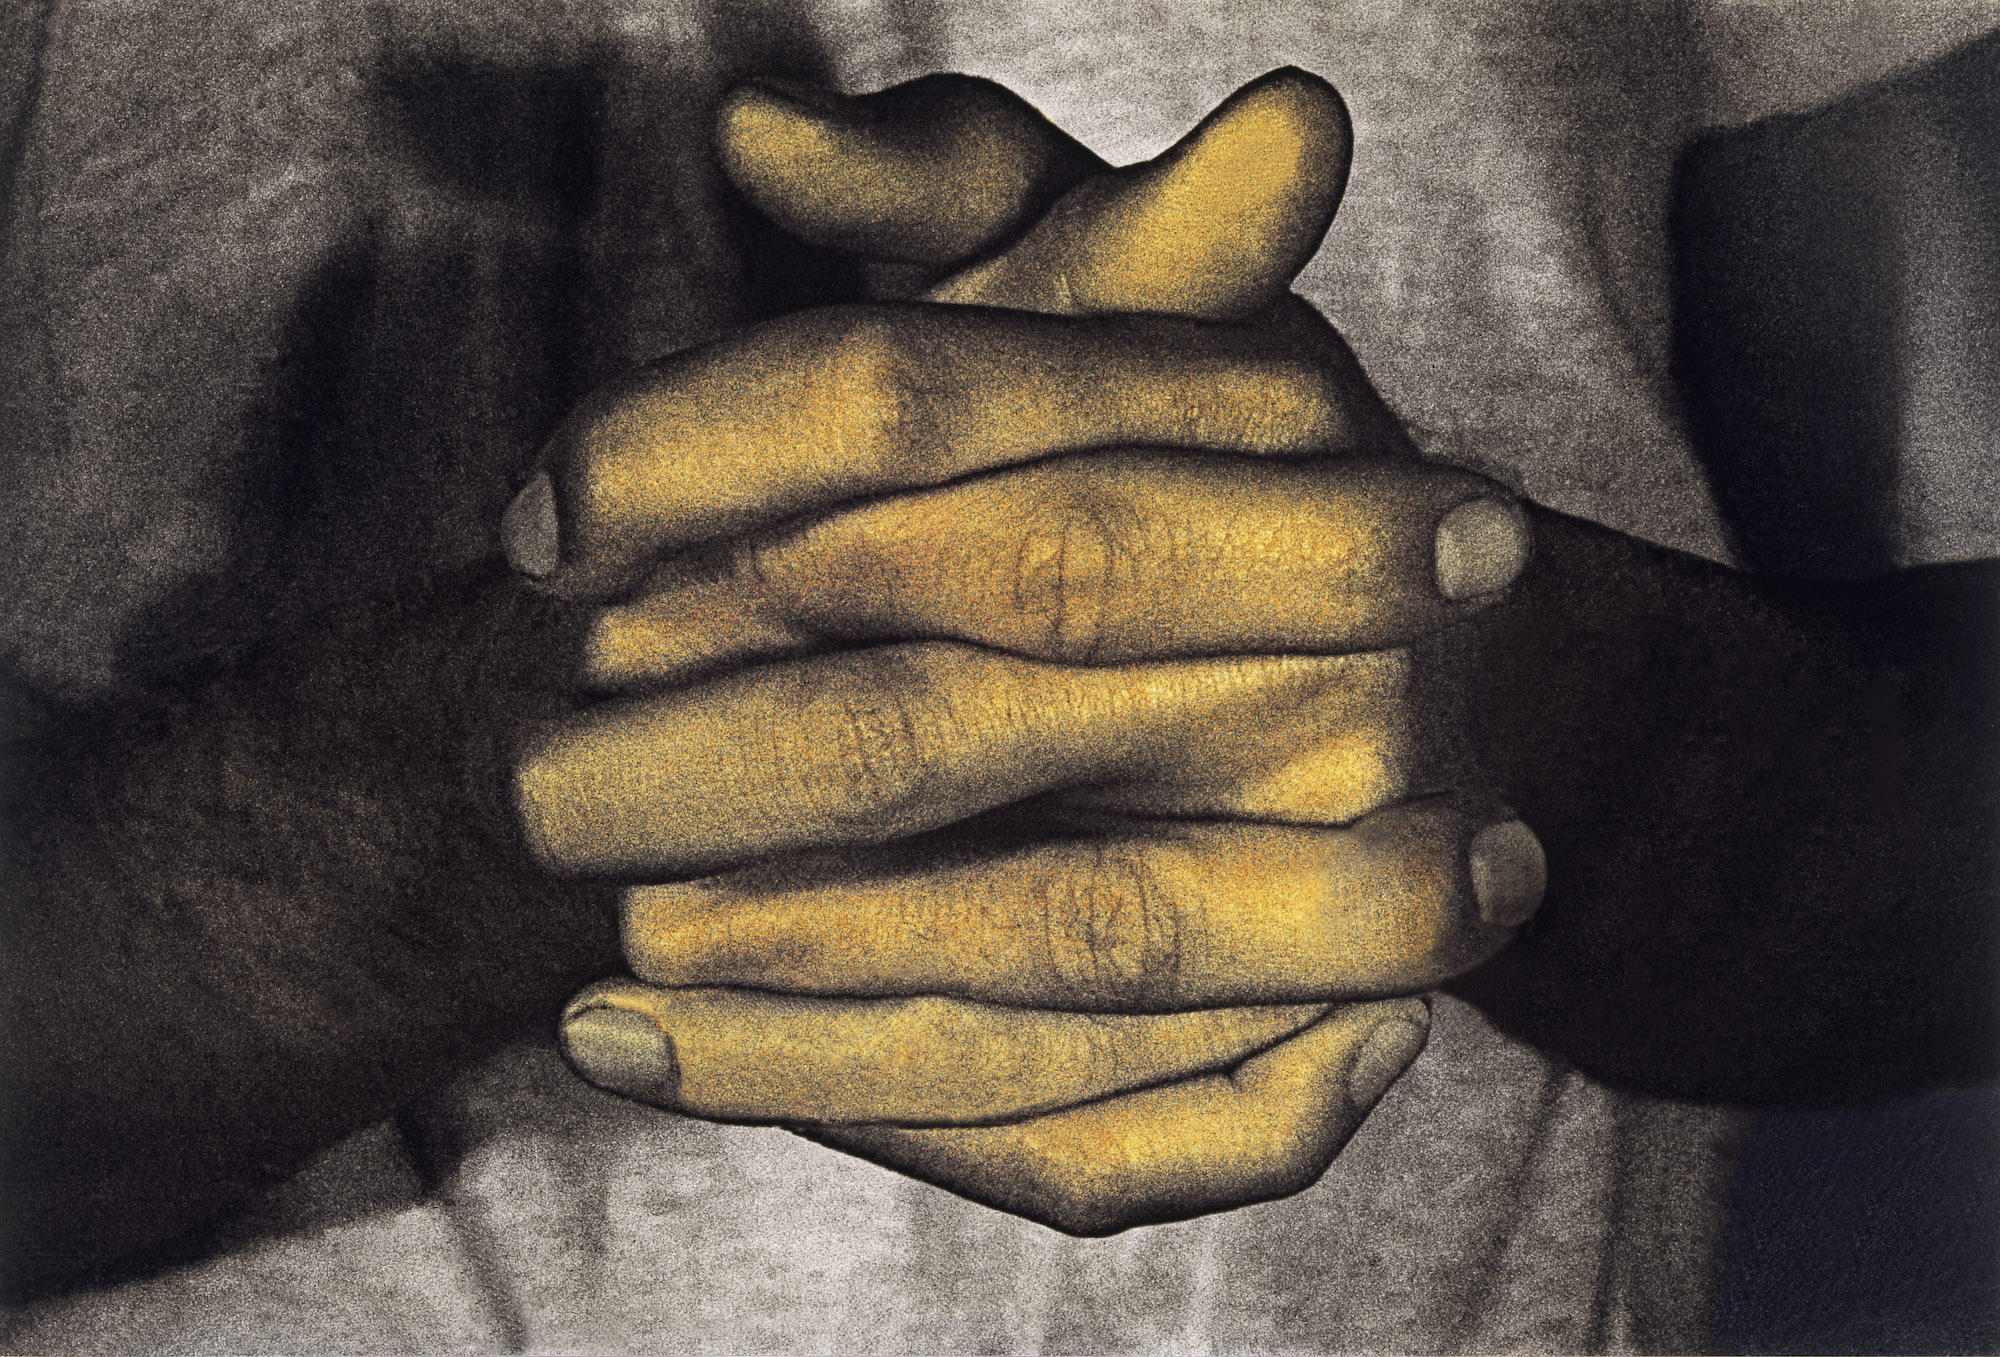 Hands Only,  2006